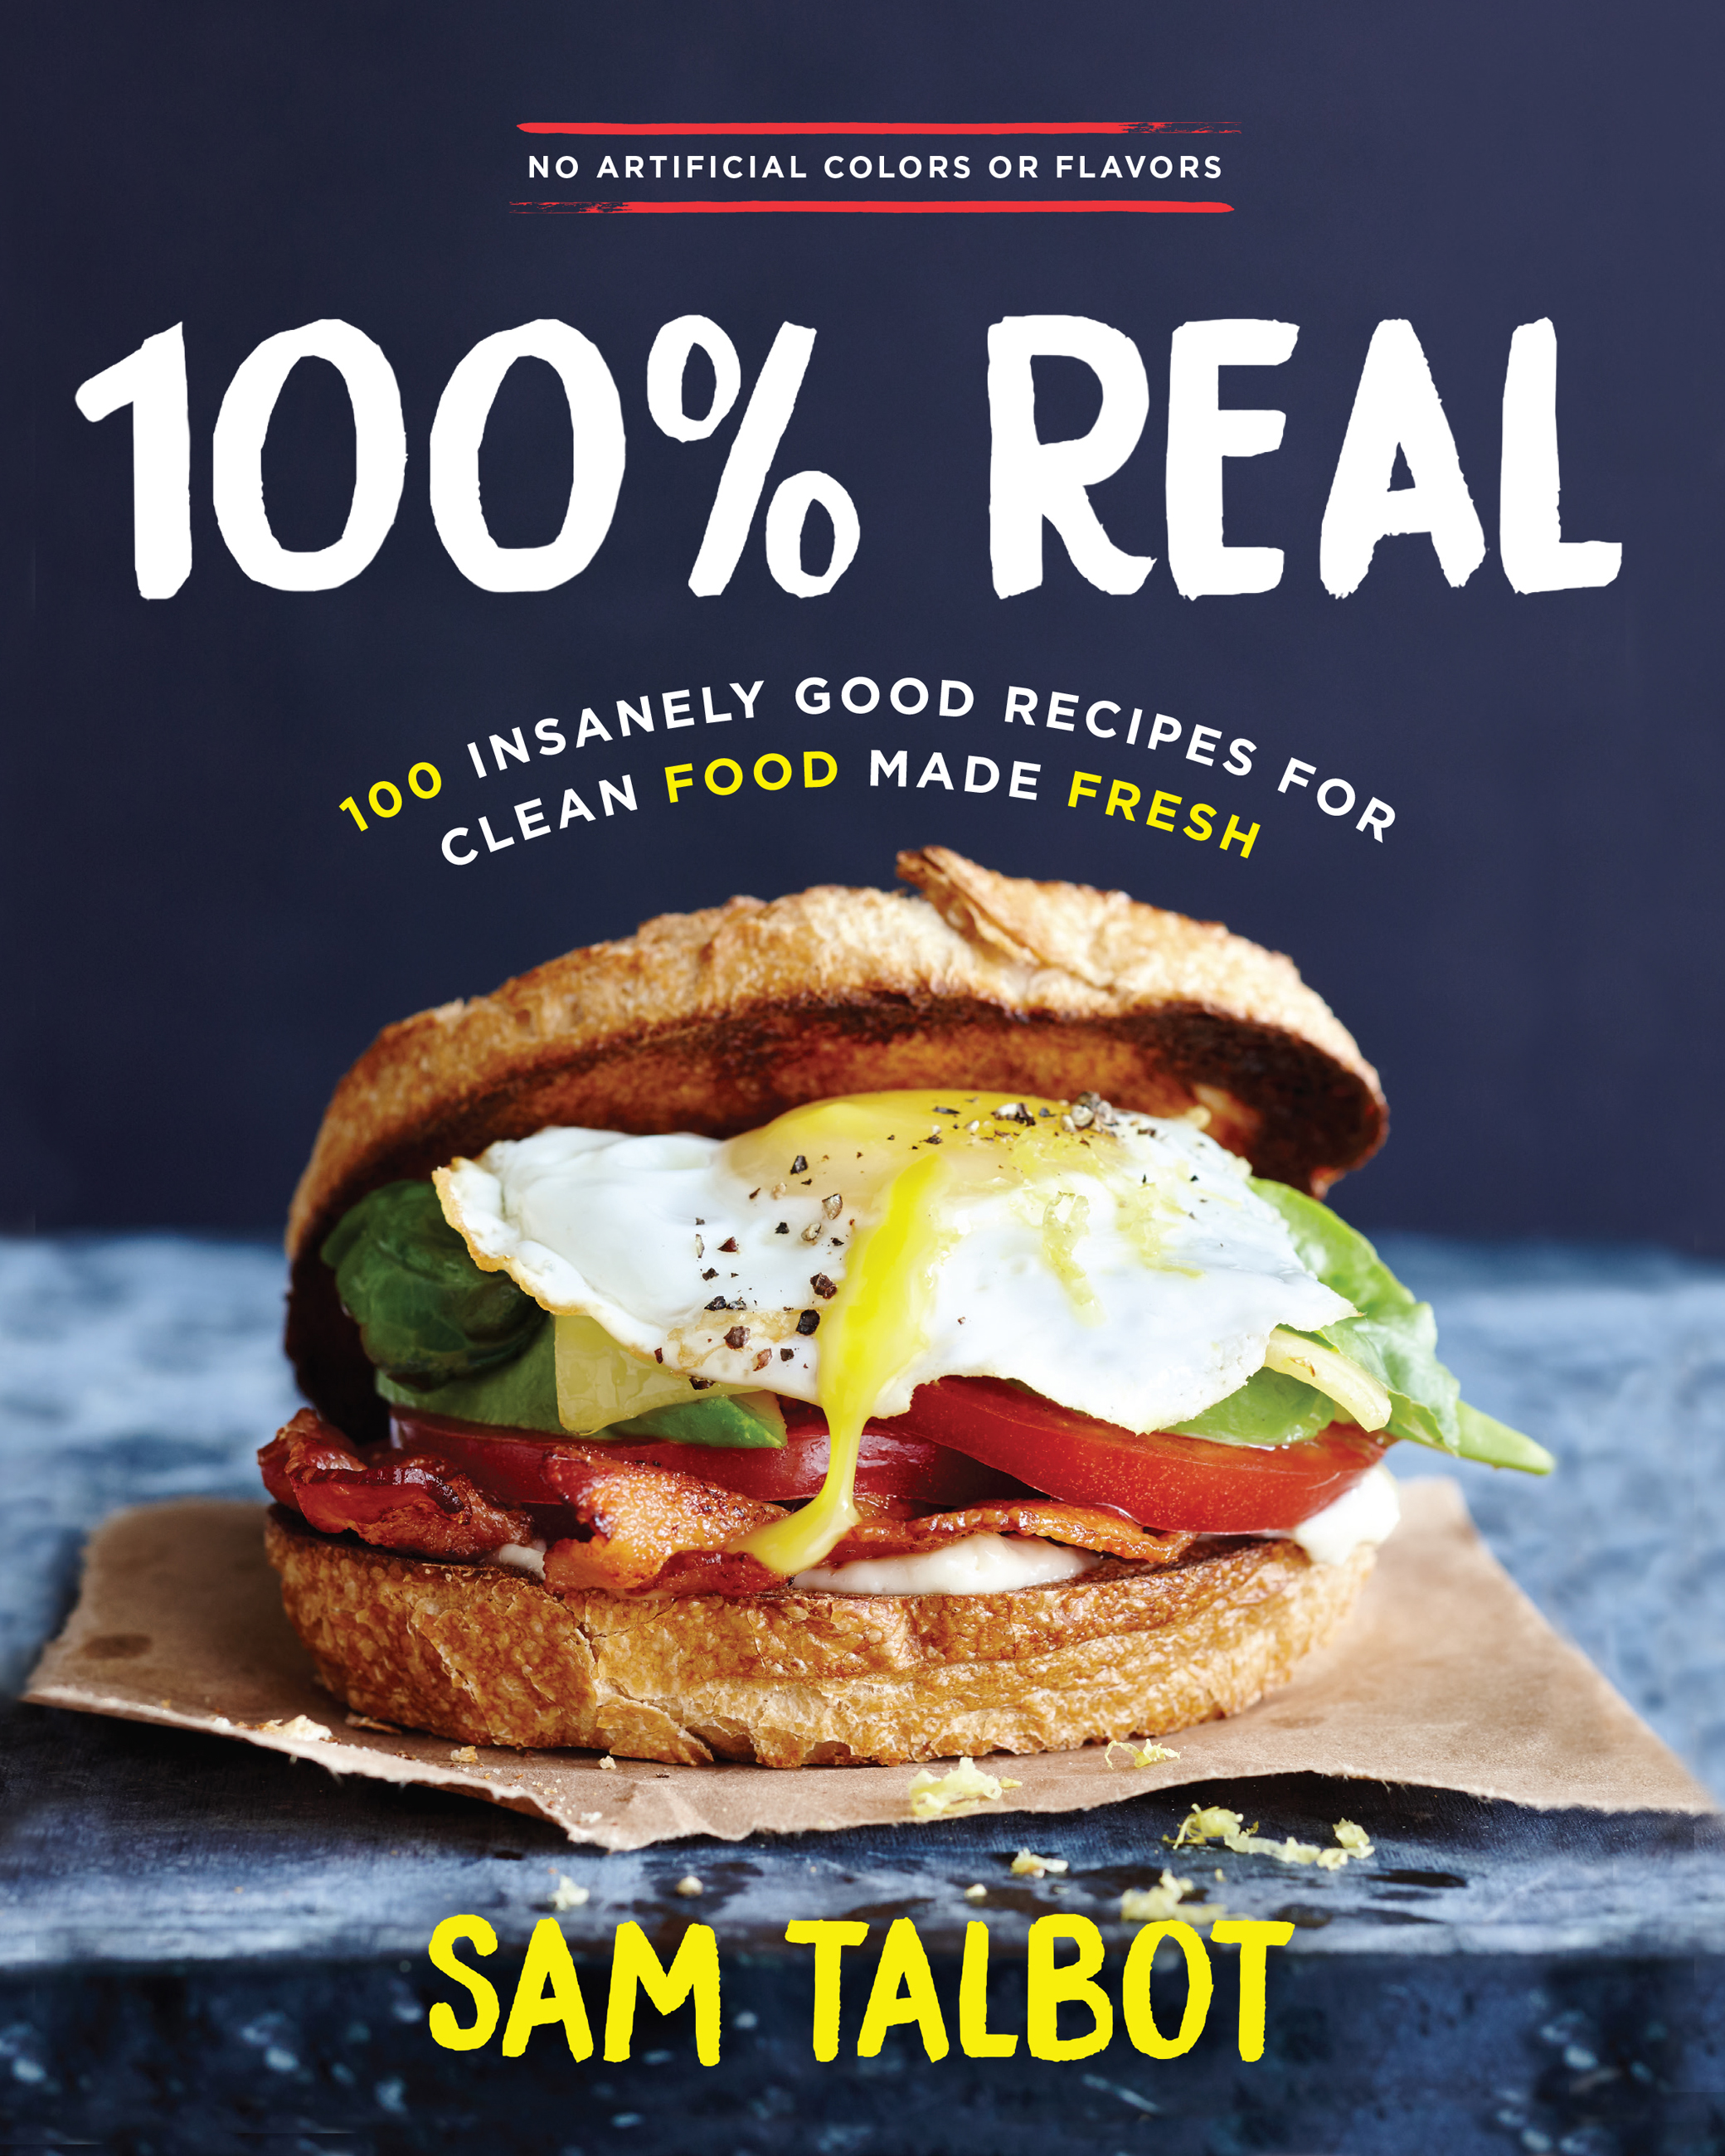 100% Real 100 Insanely Good Recipes For Clean Food Made Fresh